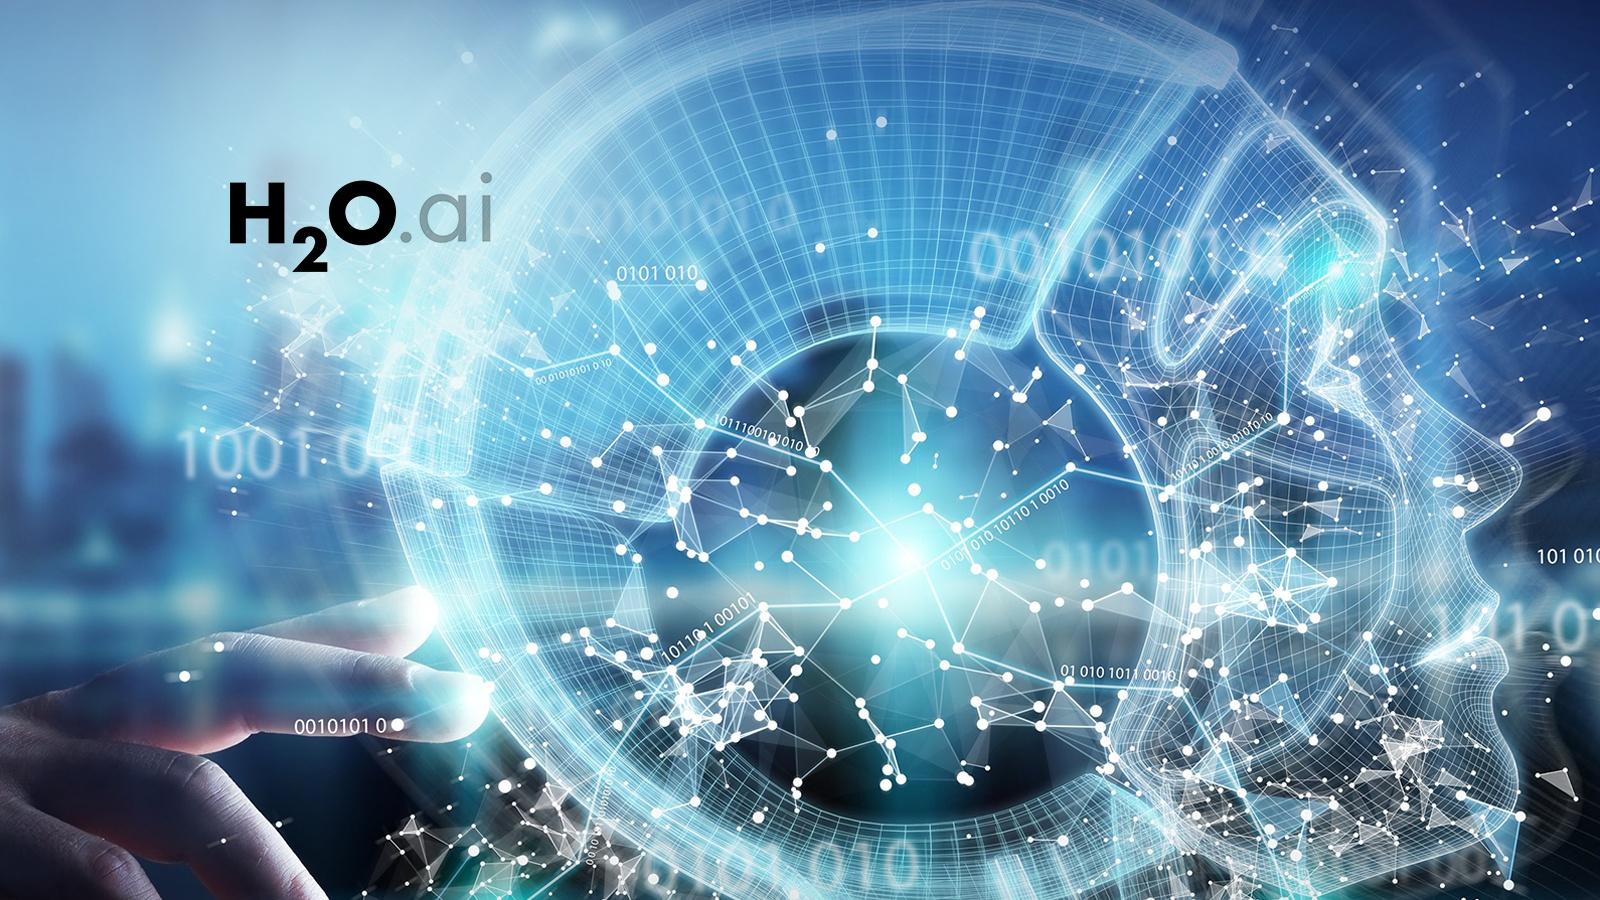 H2O.ai secures $72.5M funding led by Goldman Sachs